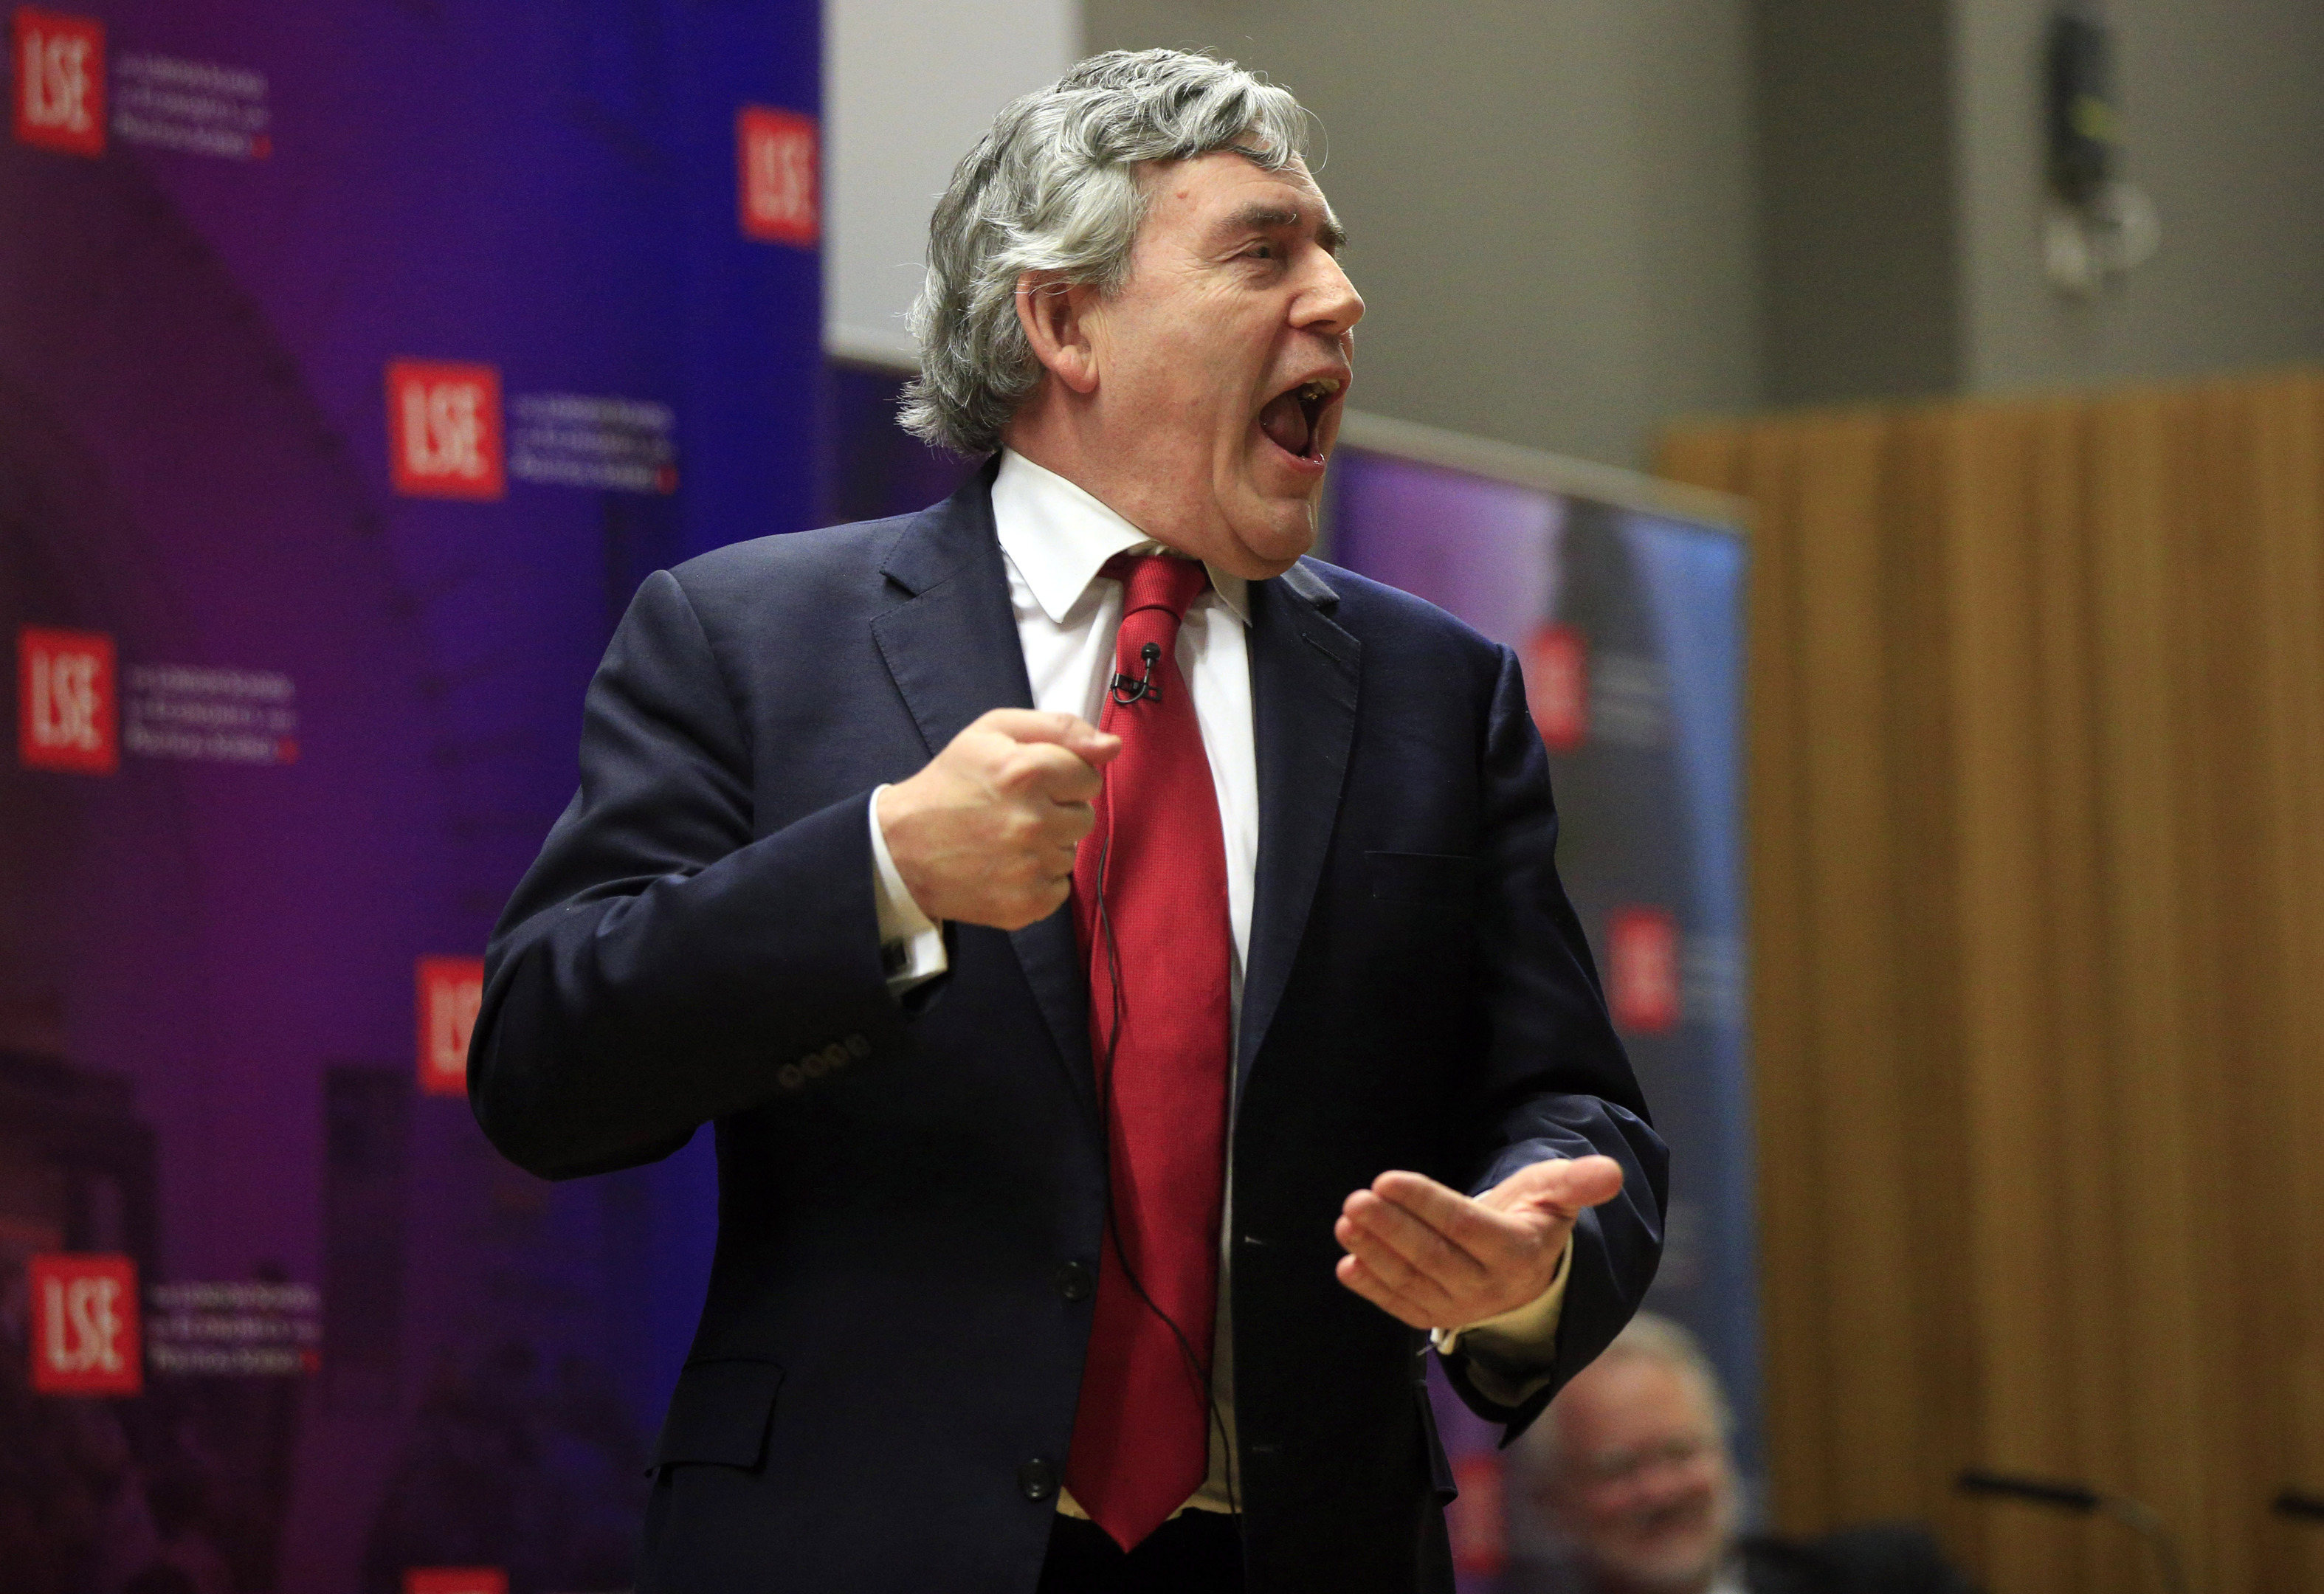 Gordon Brown delivering a passionate speech